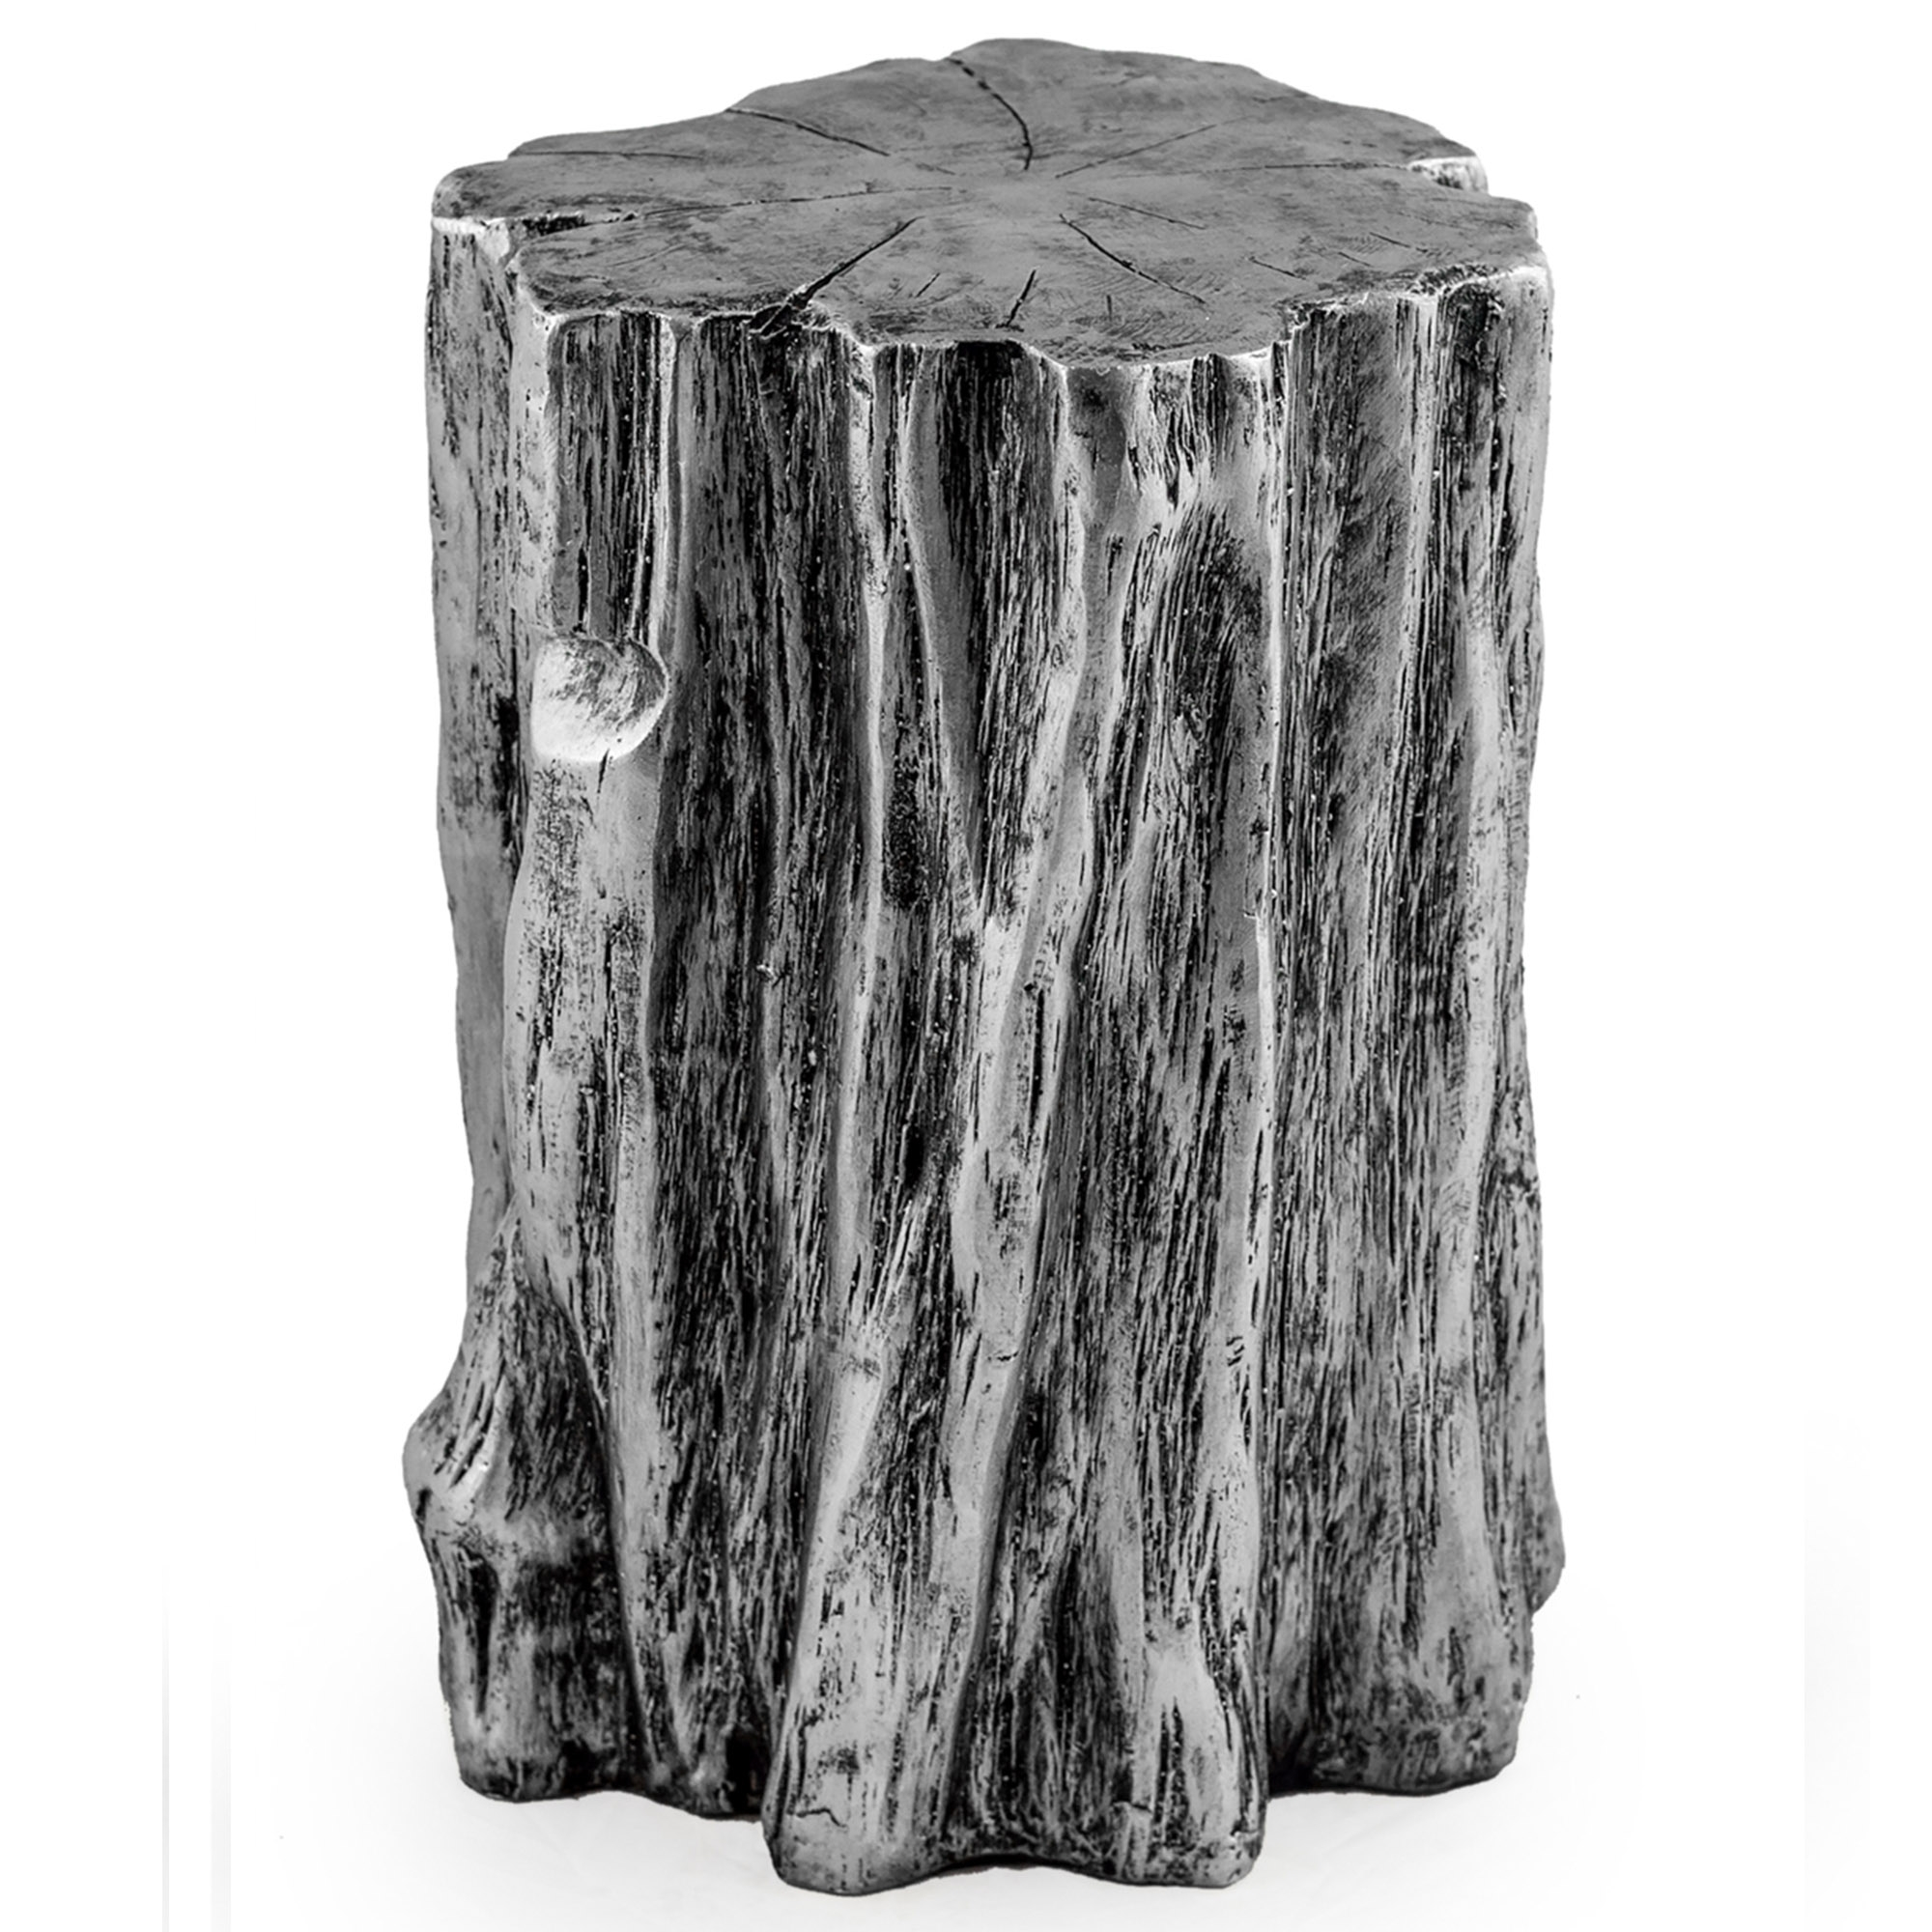 silver tree trunk stool available online now from homesdirect365